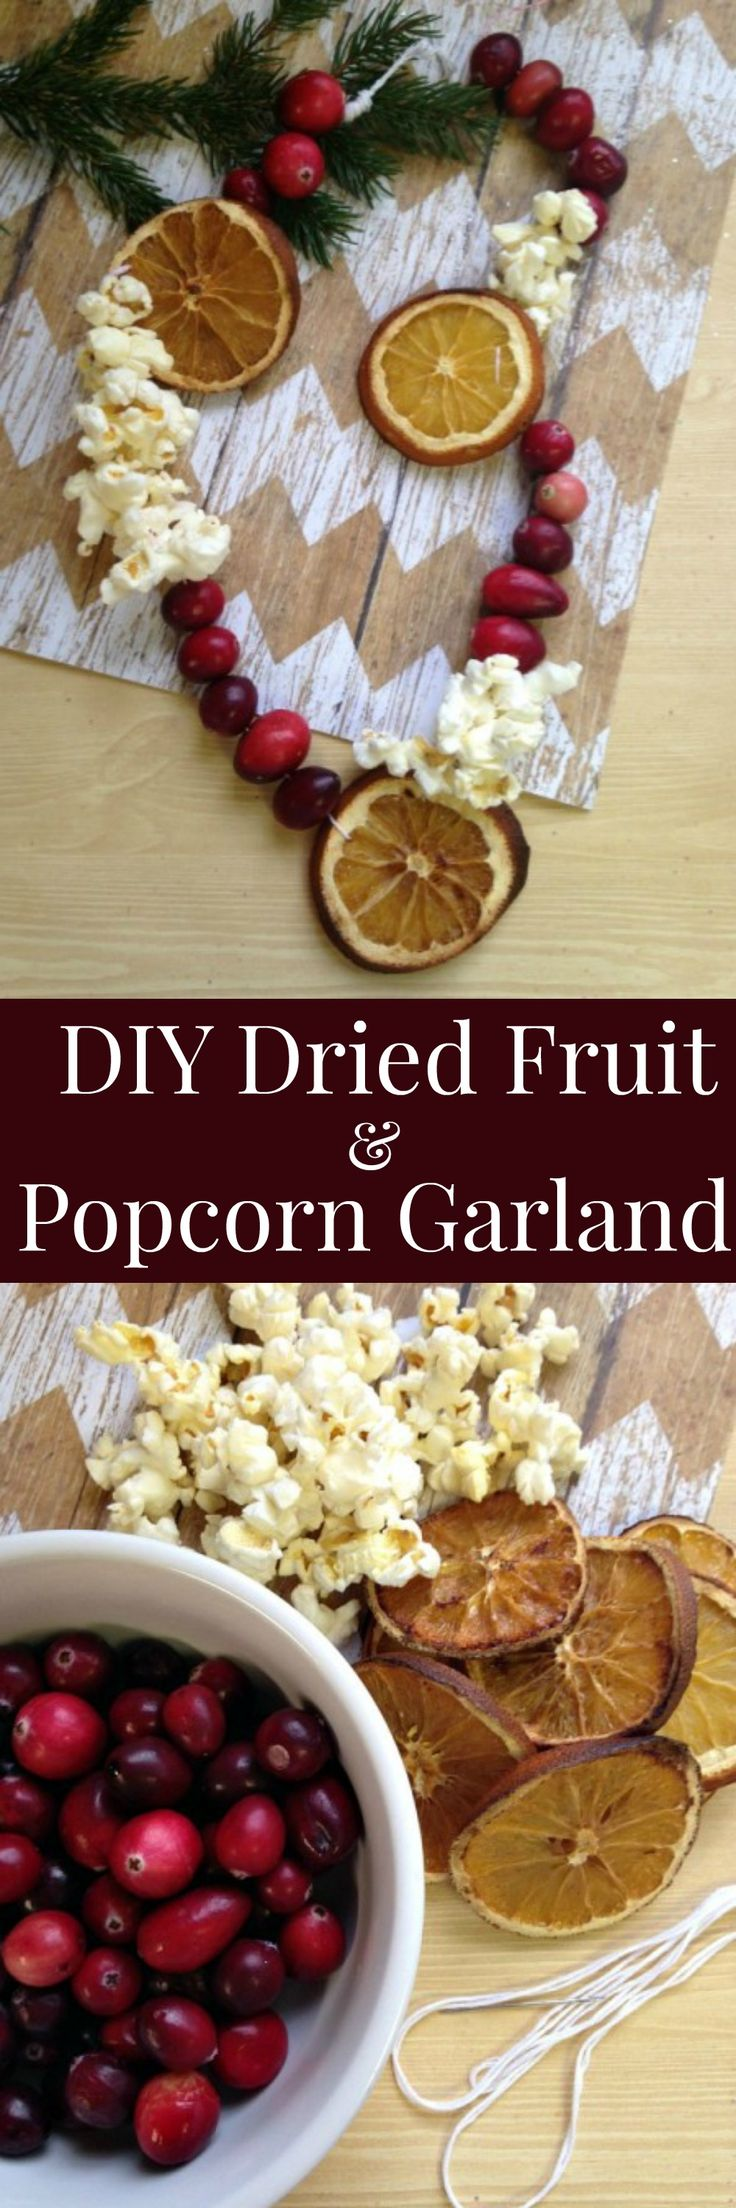 DIY Dried Fruit and Popcorn Garland - Making your own dried fruit & popcorn garland is a fun and frugal way to decorate your home and tree for the holidays.